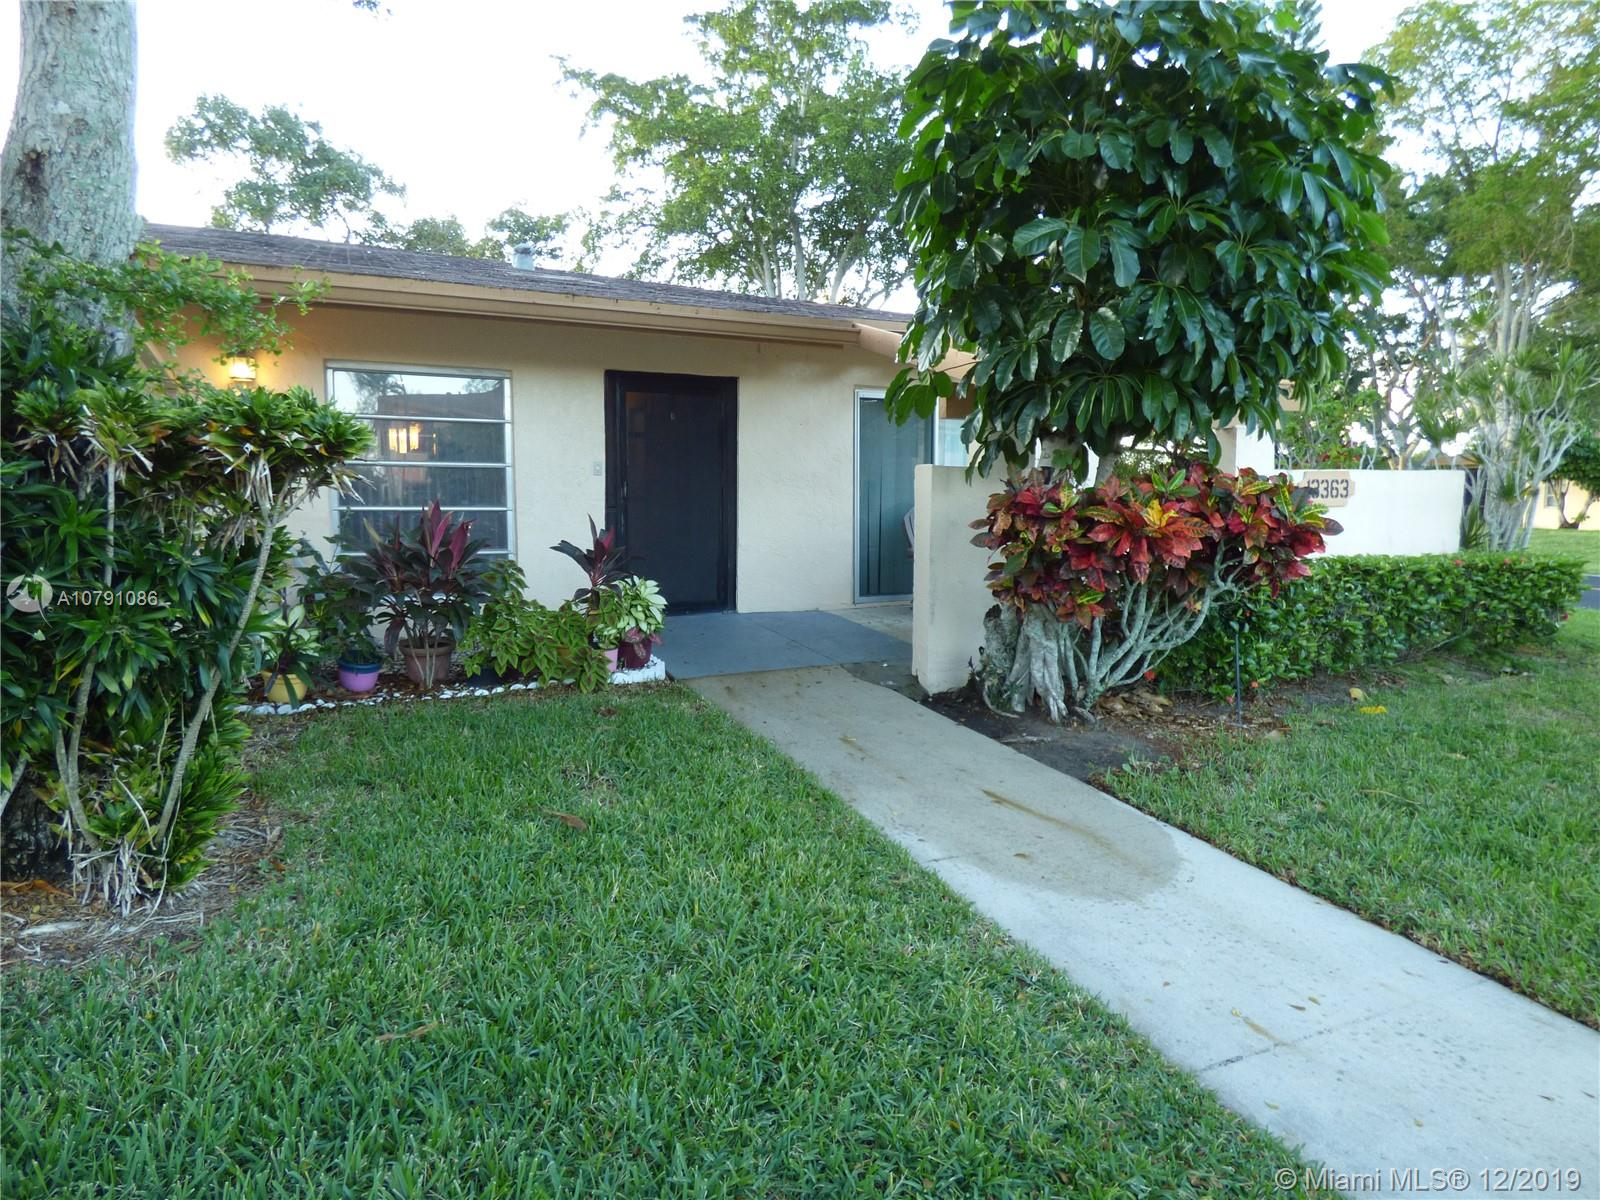 13363 Pineapple Palm Ct D, Delray Beach, FL 33484